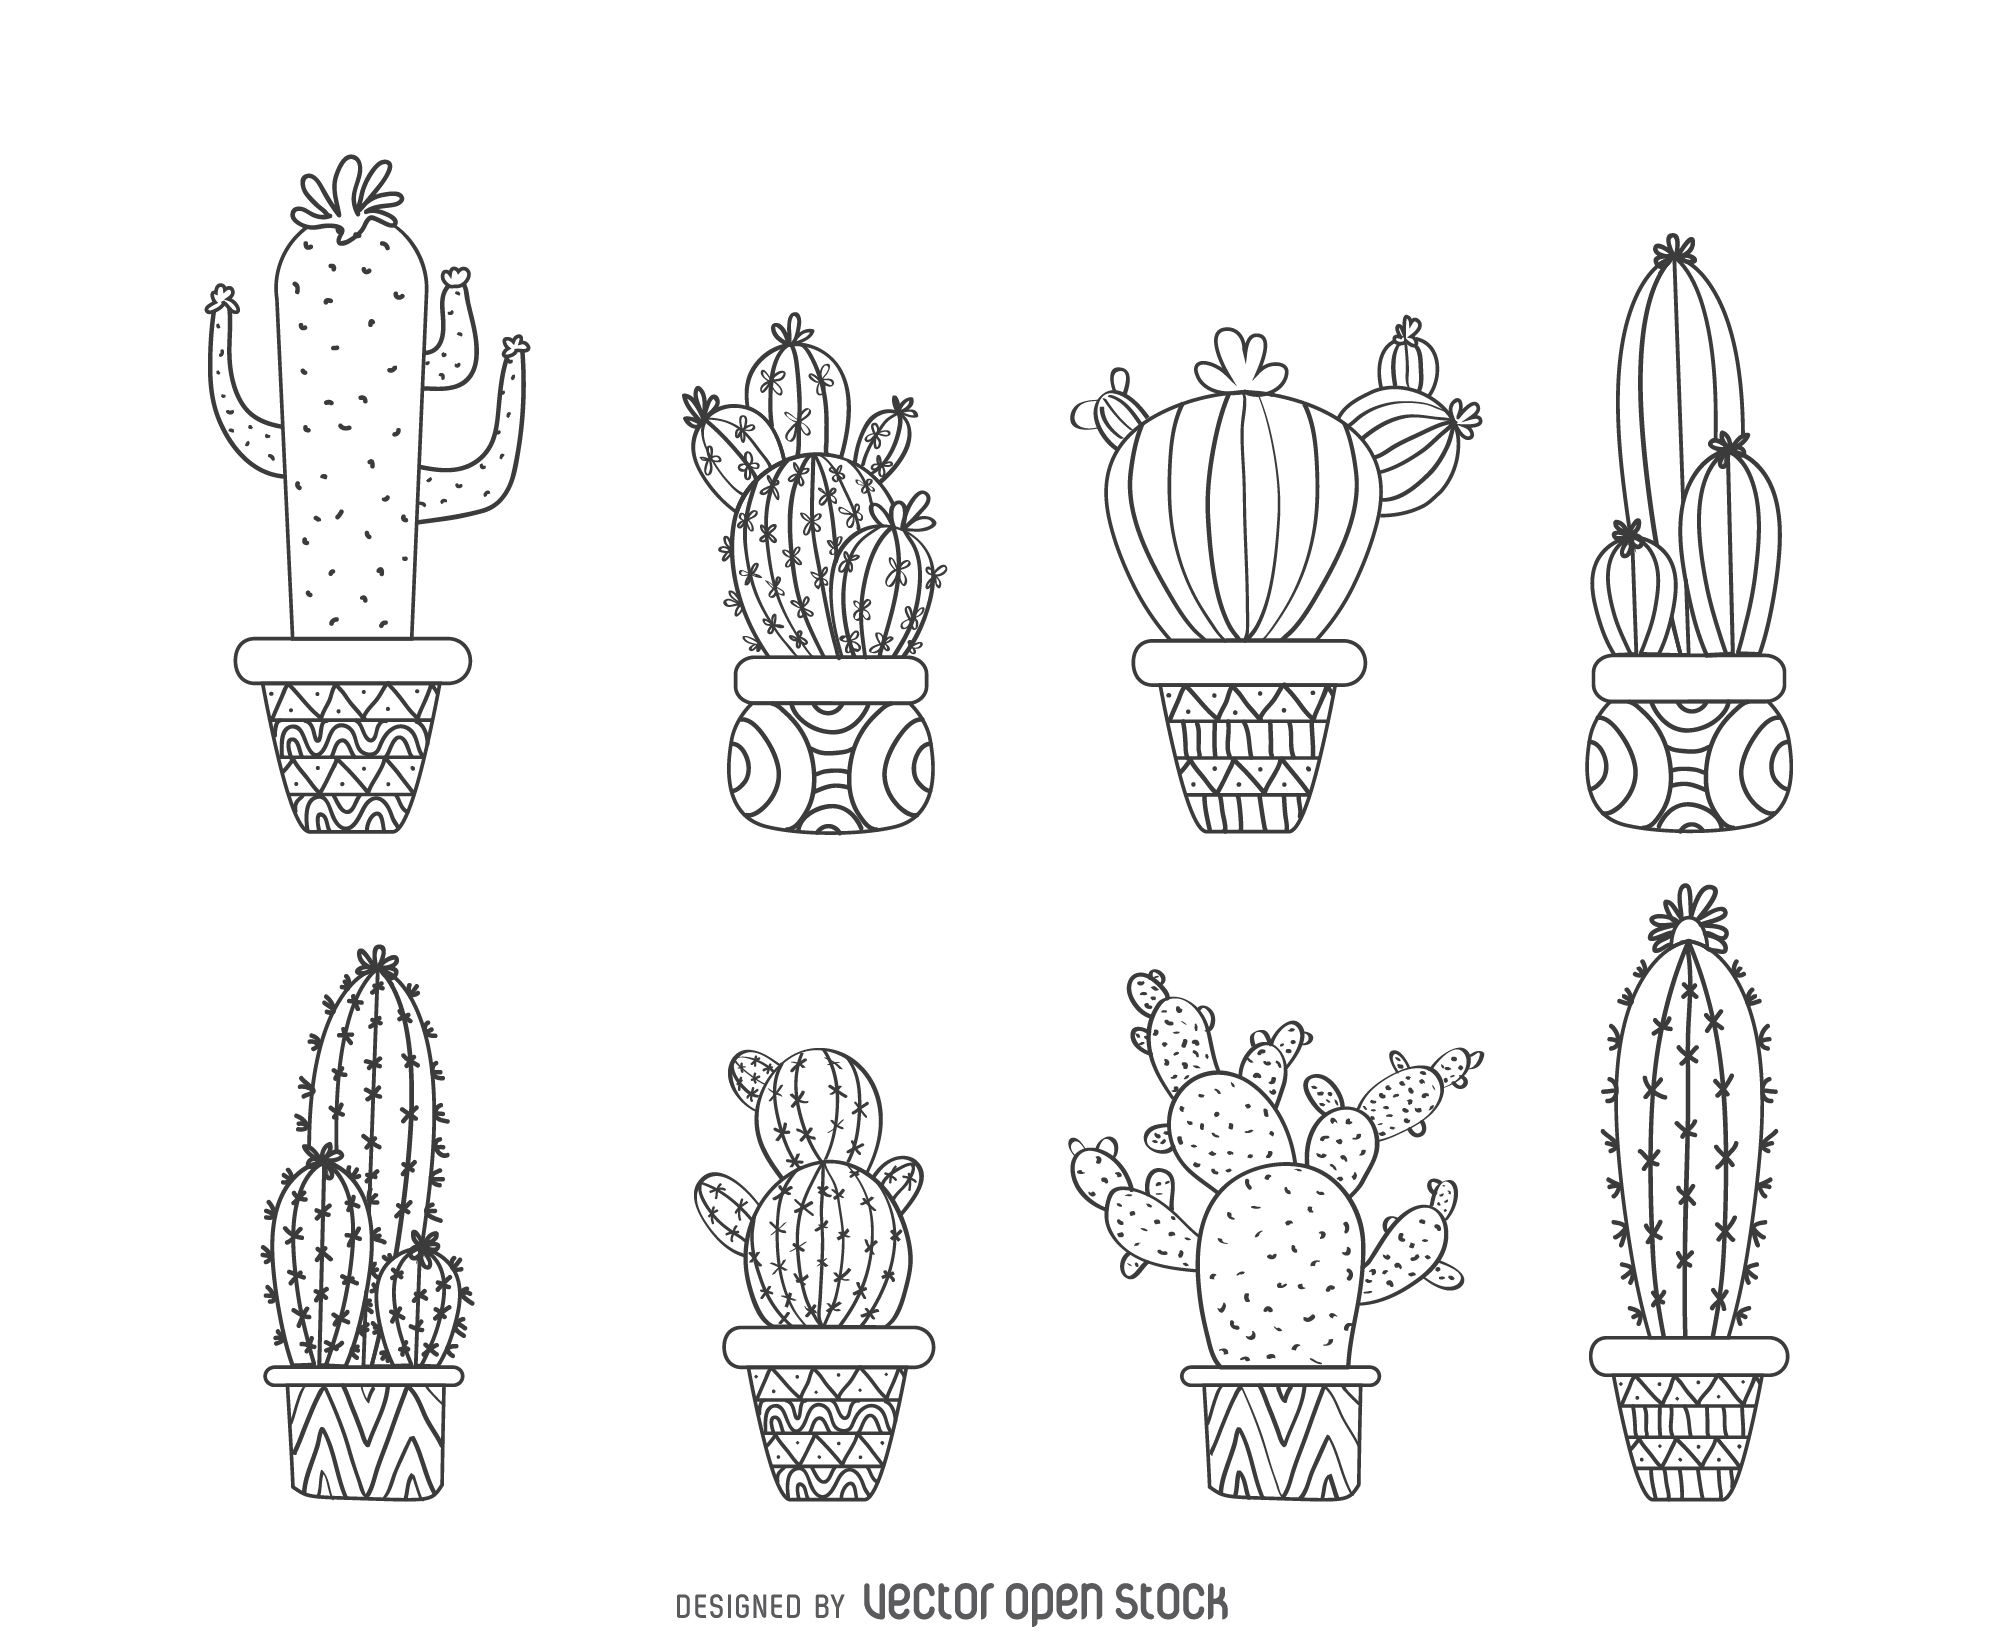 Set of illustrated cactus outlines featuring multiple ...  Cactus Flower Outline